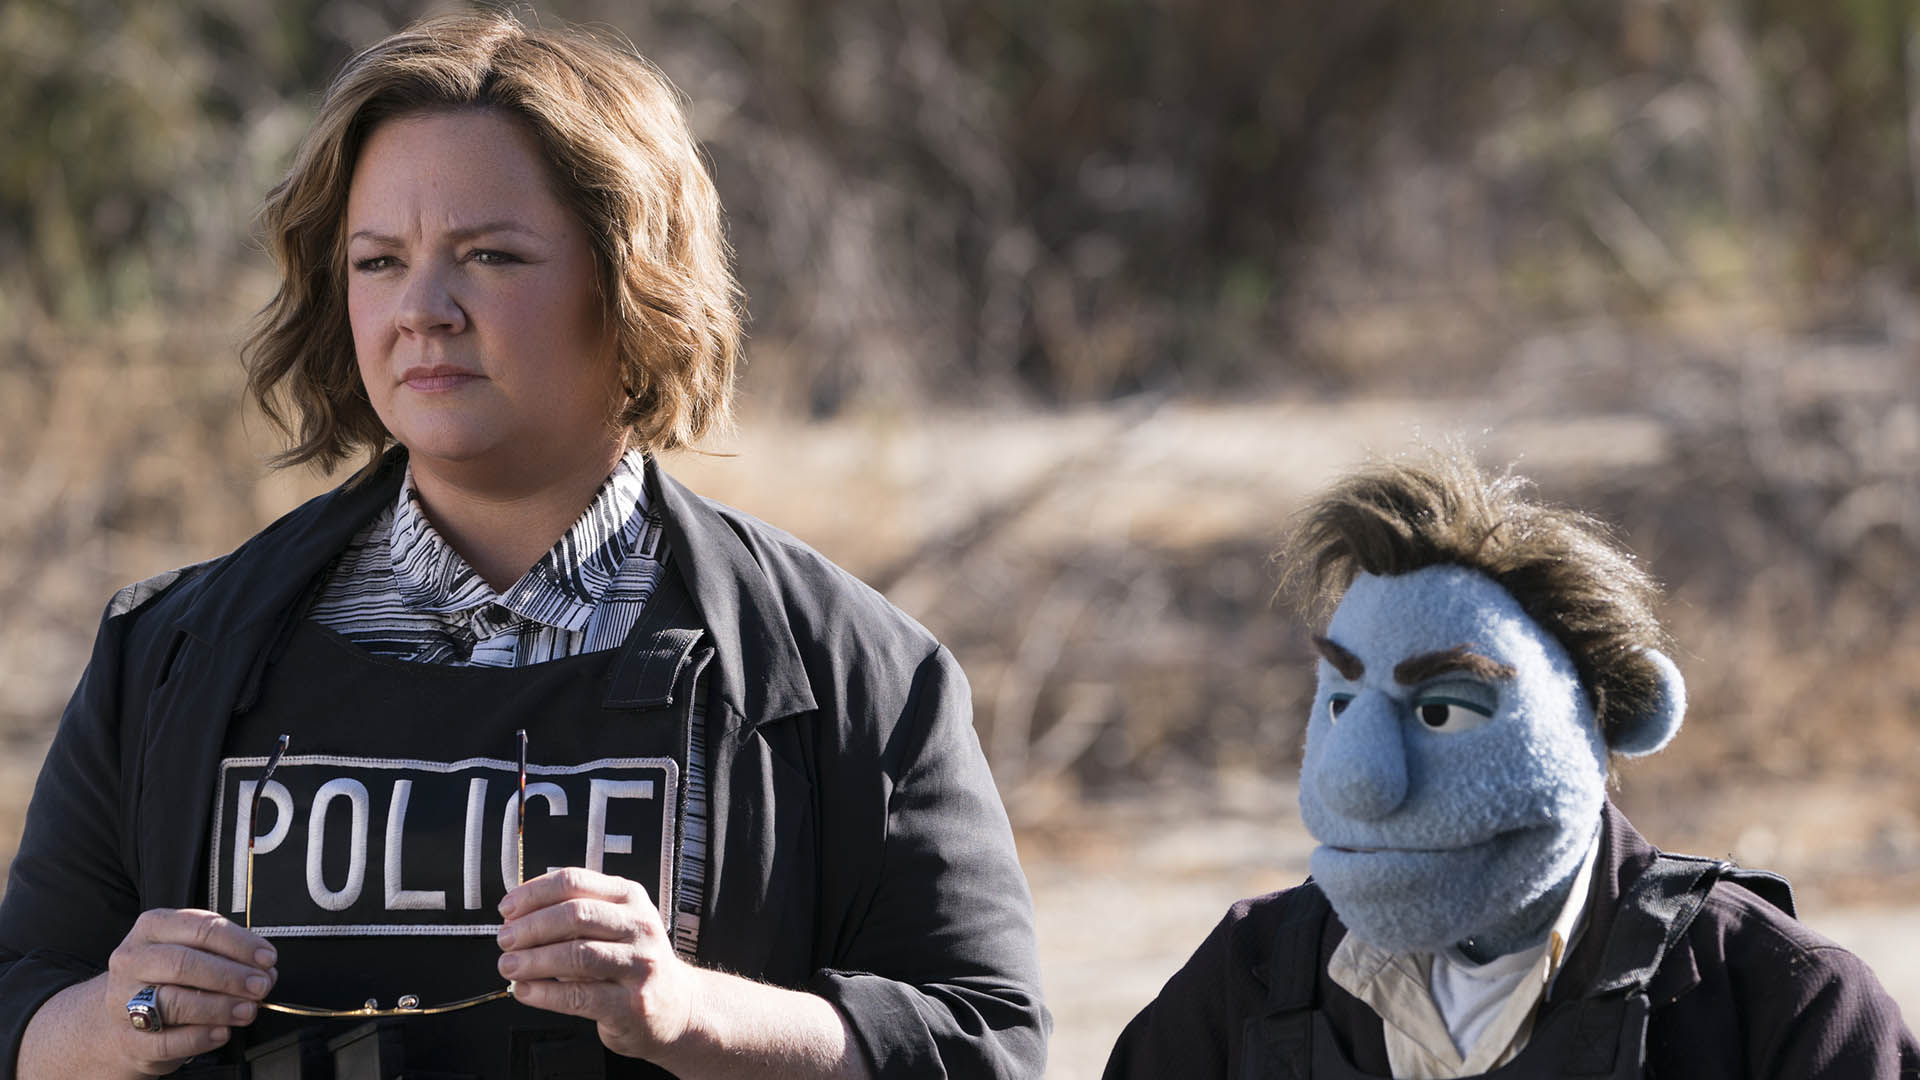 Movie Watch: Amarillo film options for Aug. 23 to 30, with 'A.X.L.,' 'Happytime Murders,' more